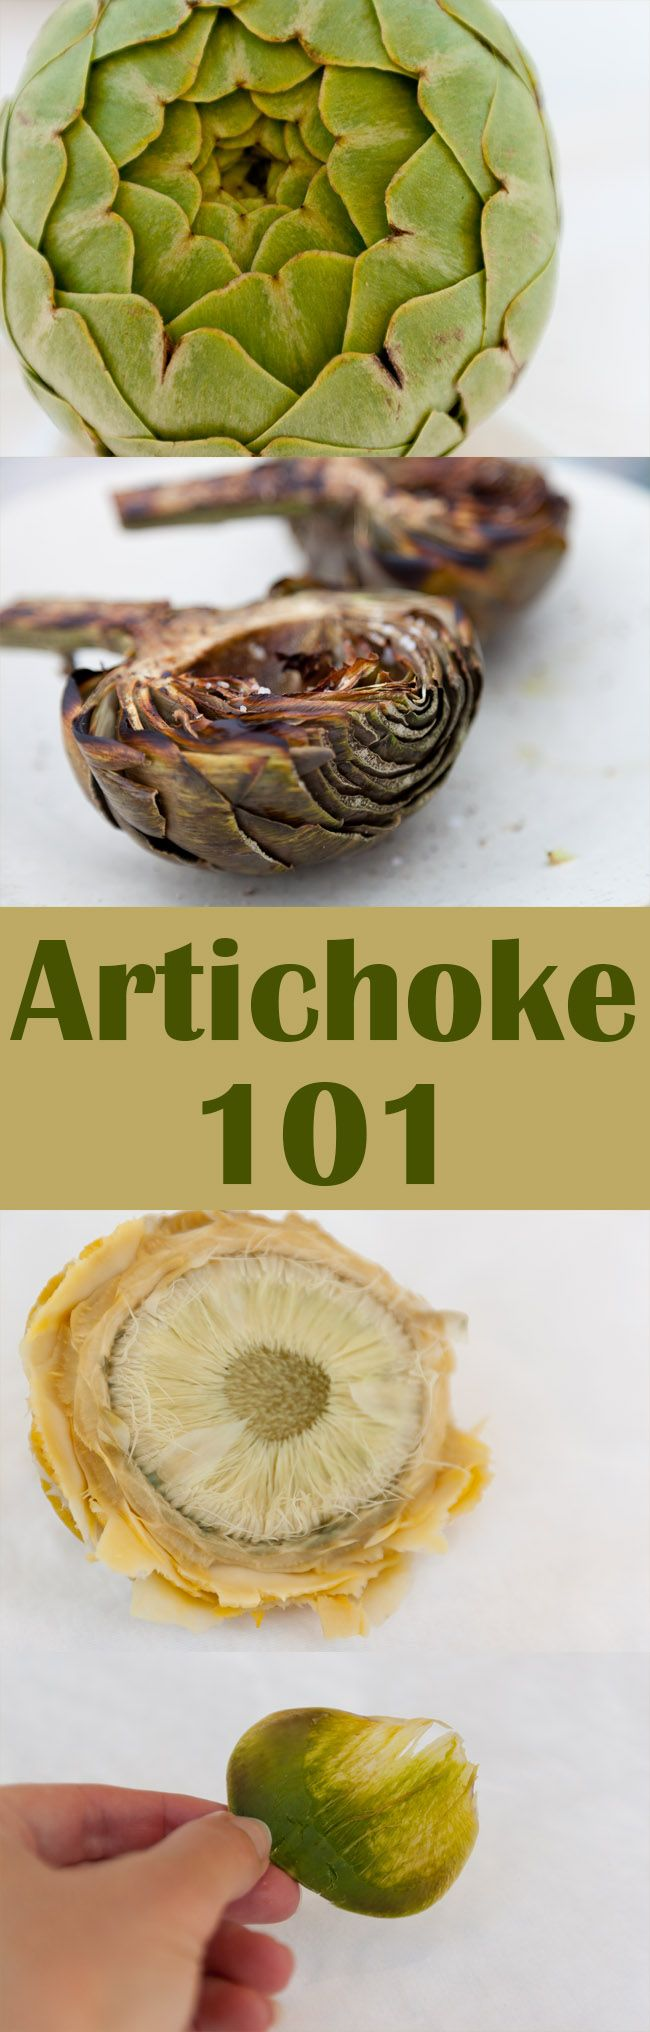 Artichoke 101. Are you a little unsure about this delicious veggie. Here's a full how to on preparing, cooking, and eating them. From microwaving, steaming, grilling, to baking and everything in between. Here's your full tutorial!